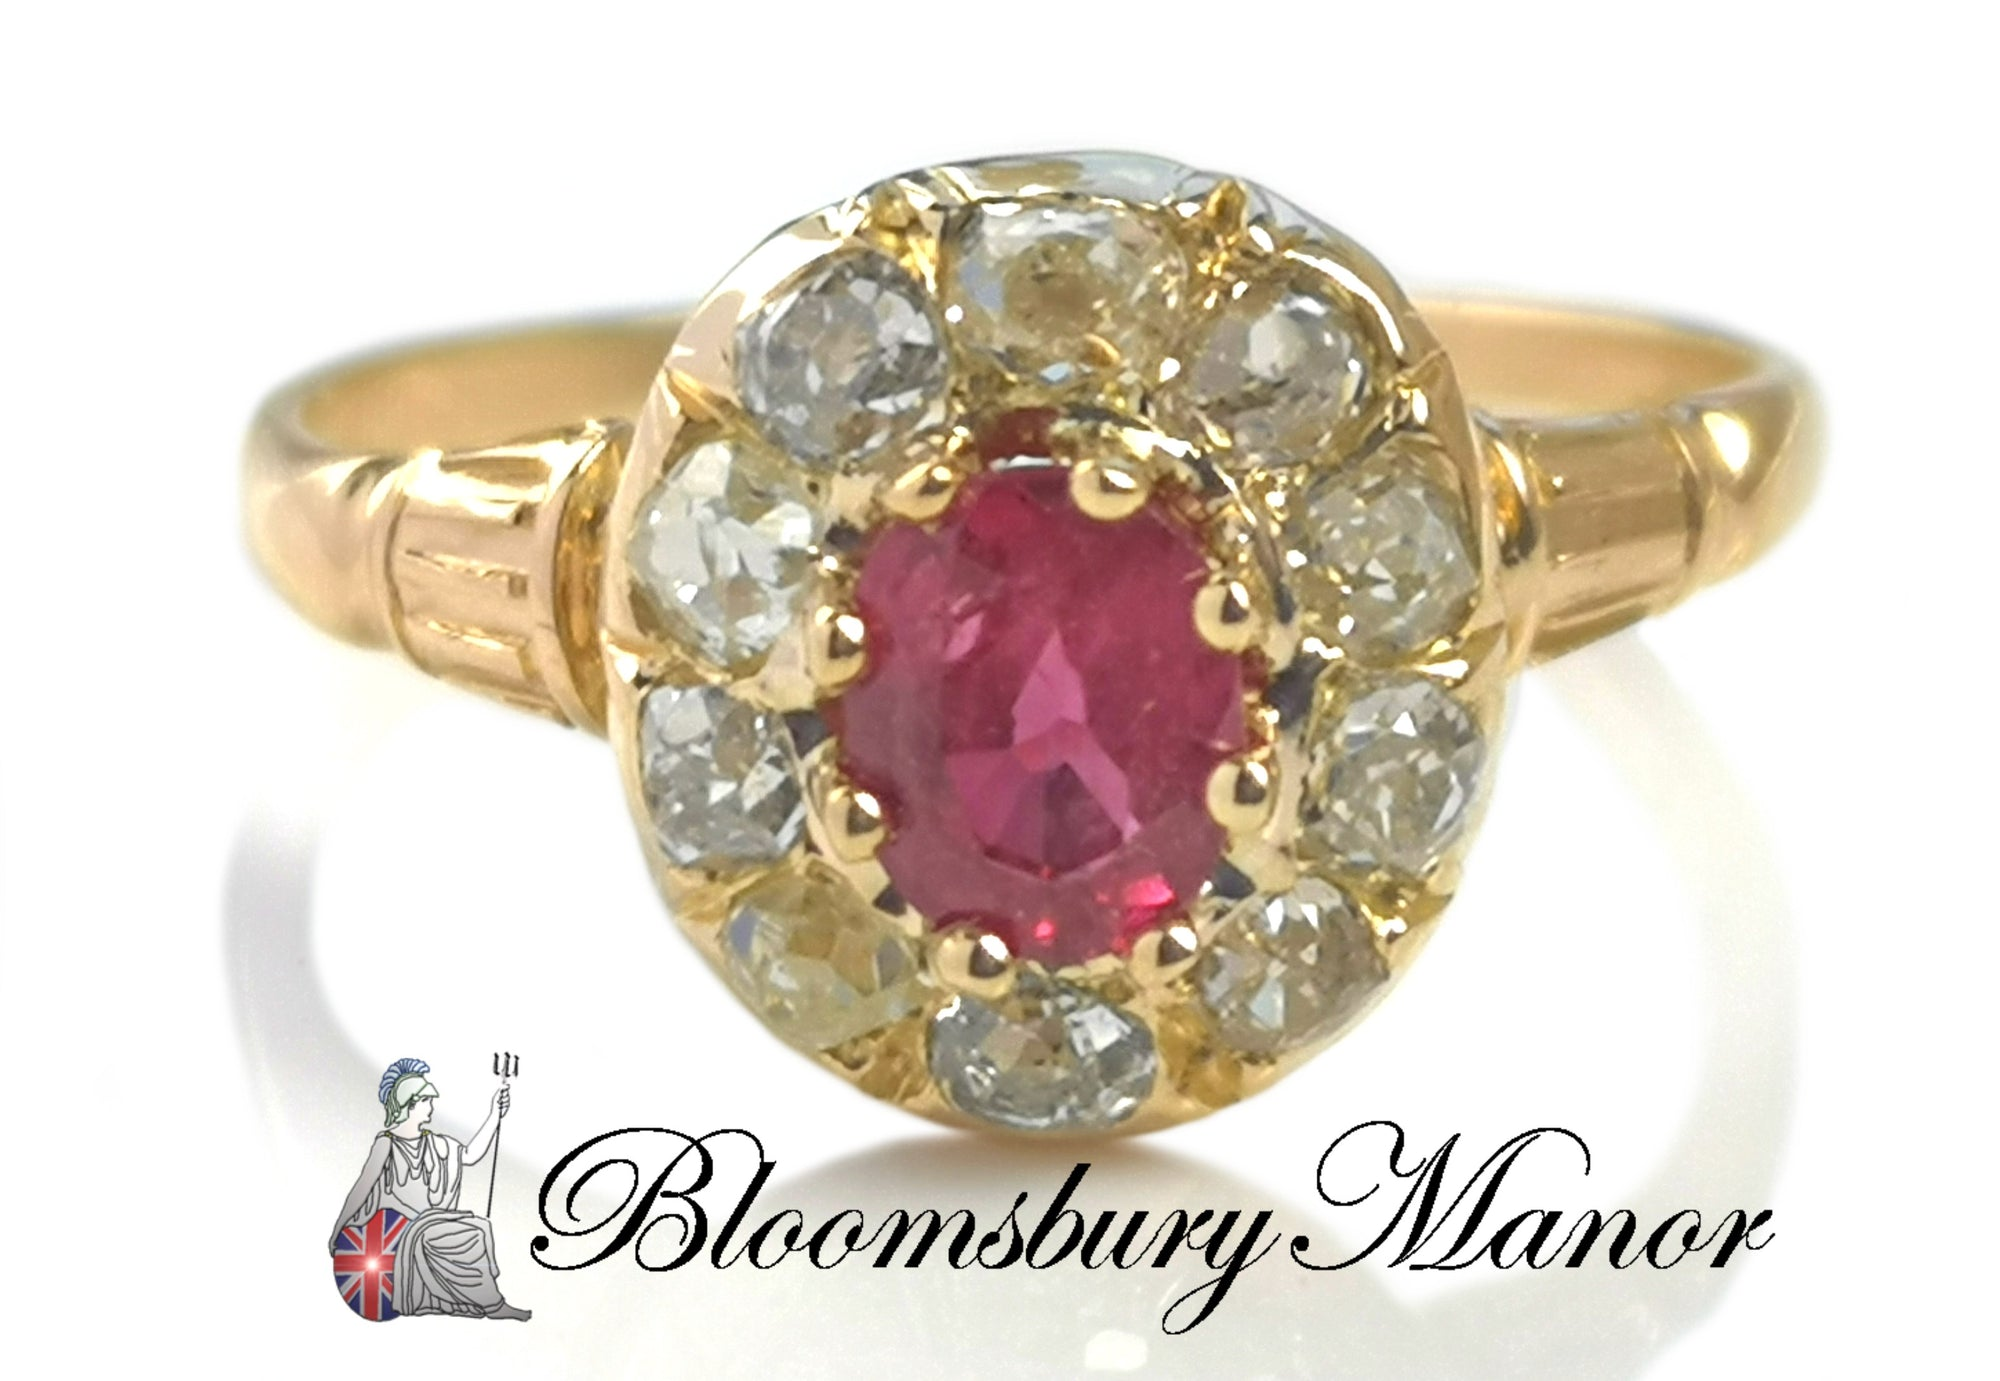 Antique Victorian French 0.55ct Ruby & Diamond Cluster Ring in 18k Yellow Gold